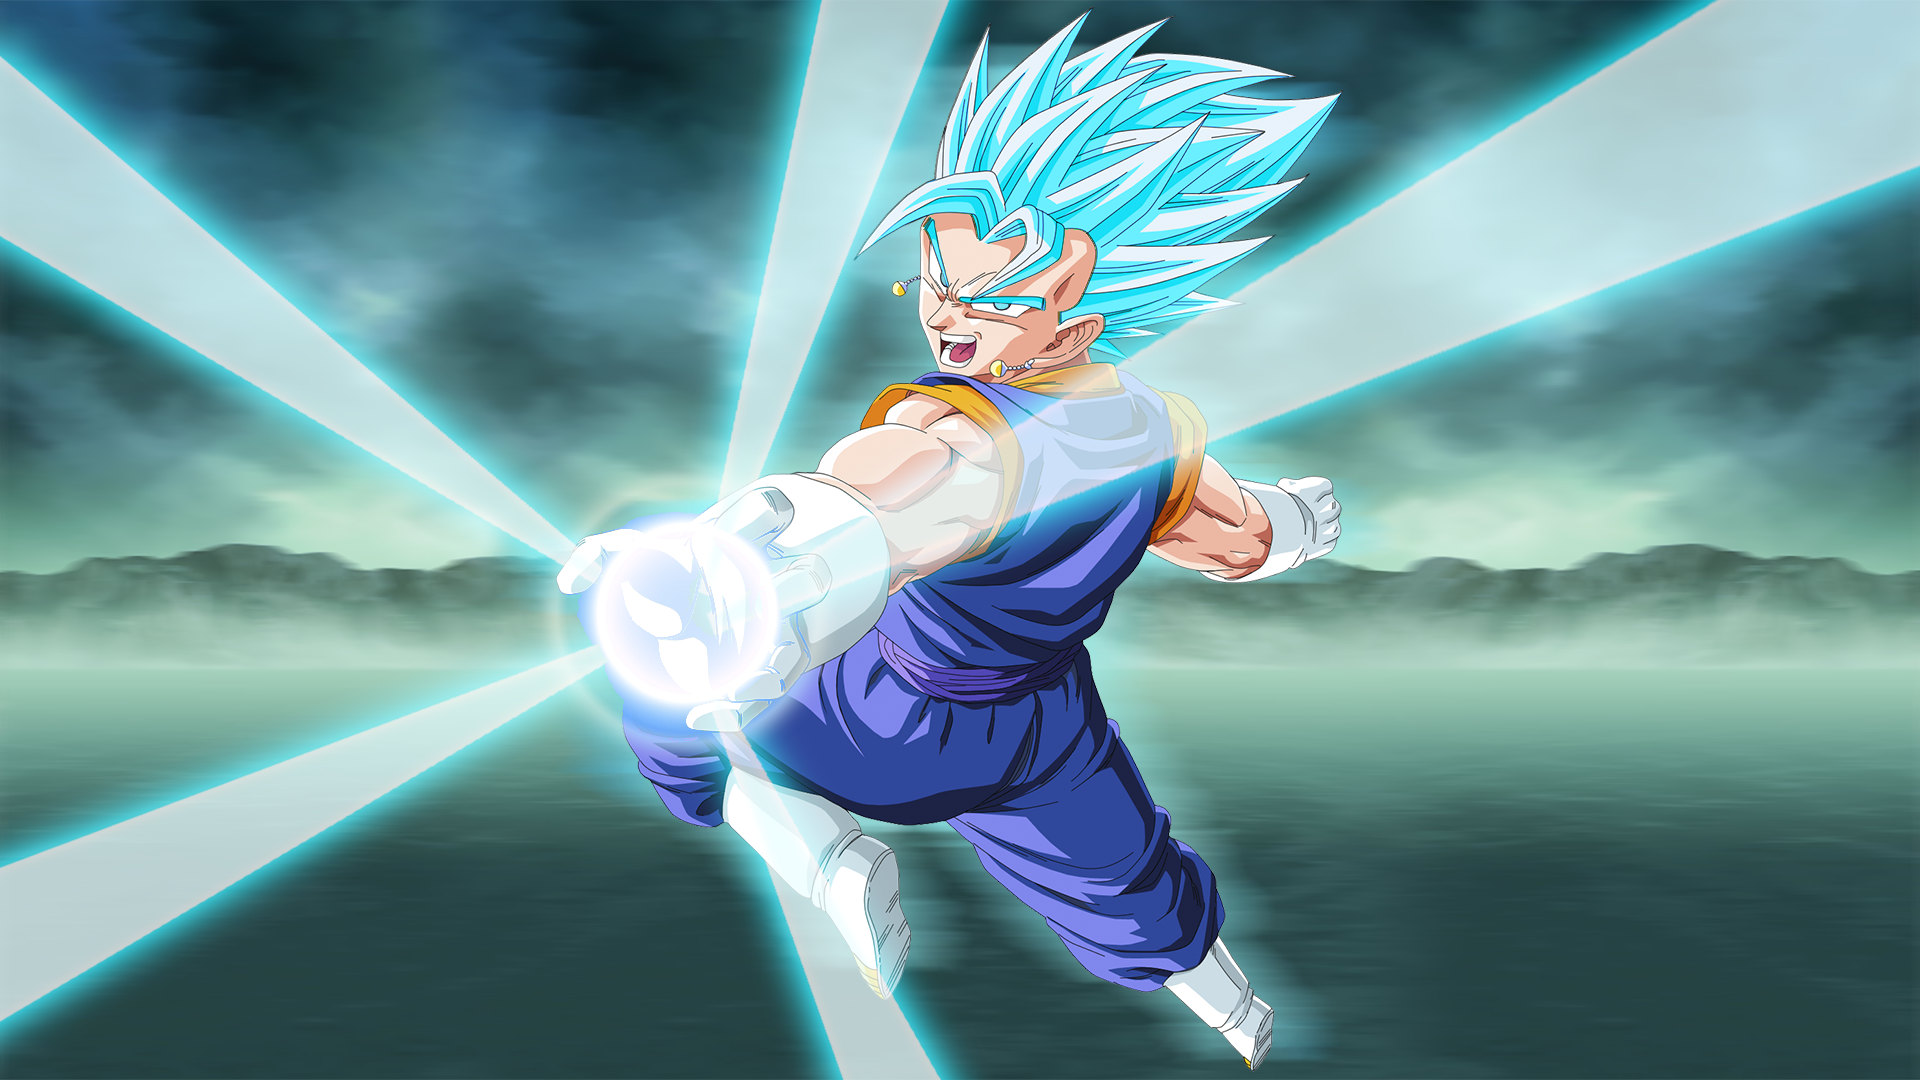 Anime - Dragon Ball Super  Vegito (Dragon Ball) SSGSS Vegito Dragon Ball Wallpaper